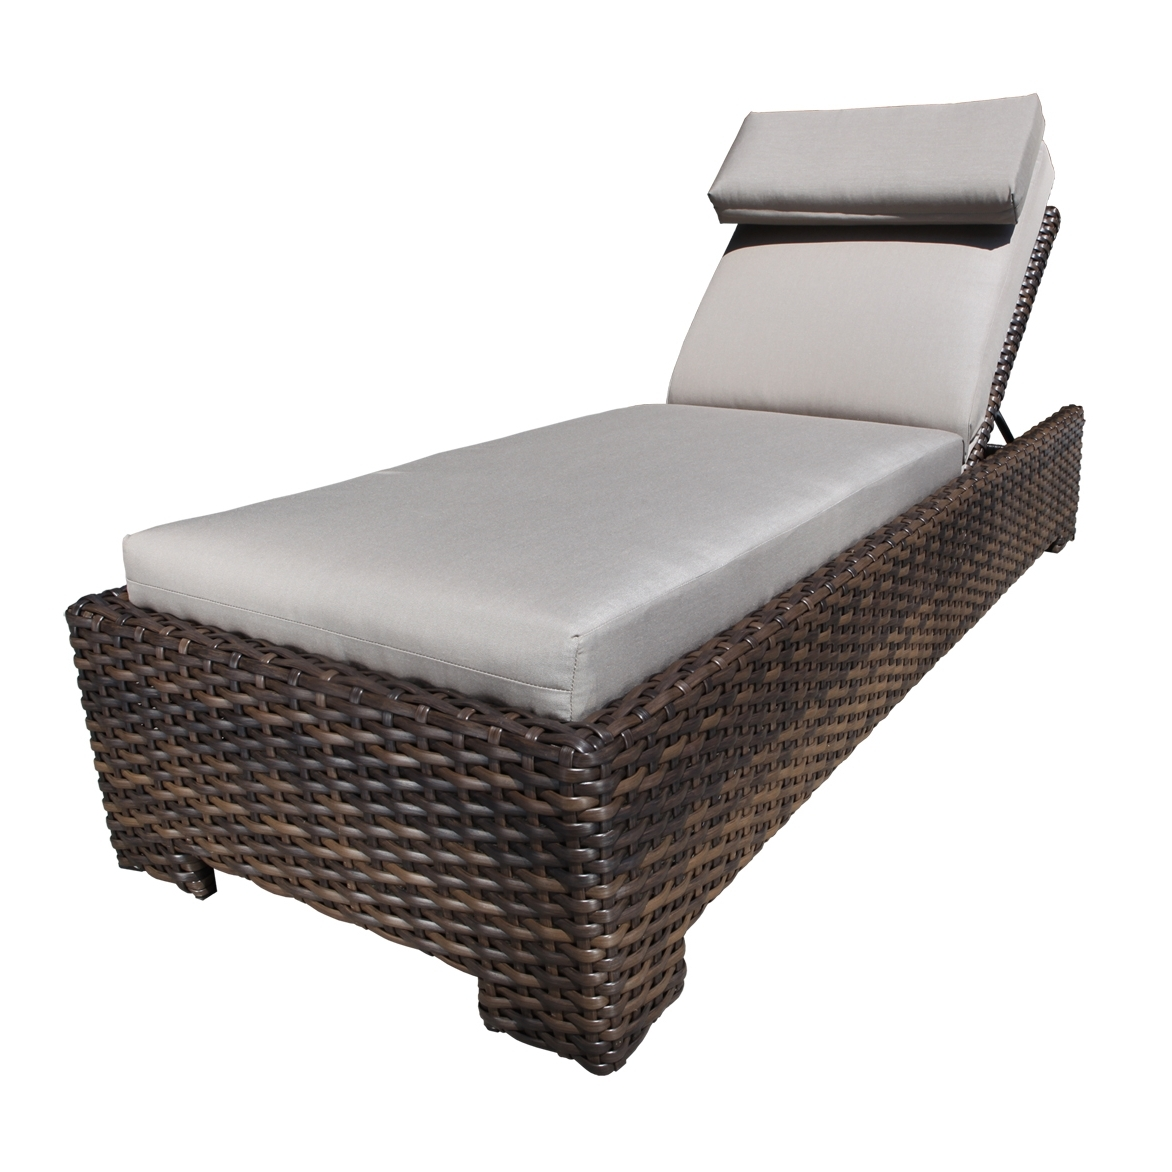 Outdoor Chaises With Regard To Best And Newest Patio Furniture Lounge Chair • Lounge Chairs Ideas (View 14 of 15)